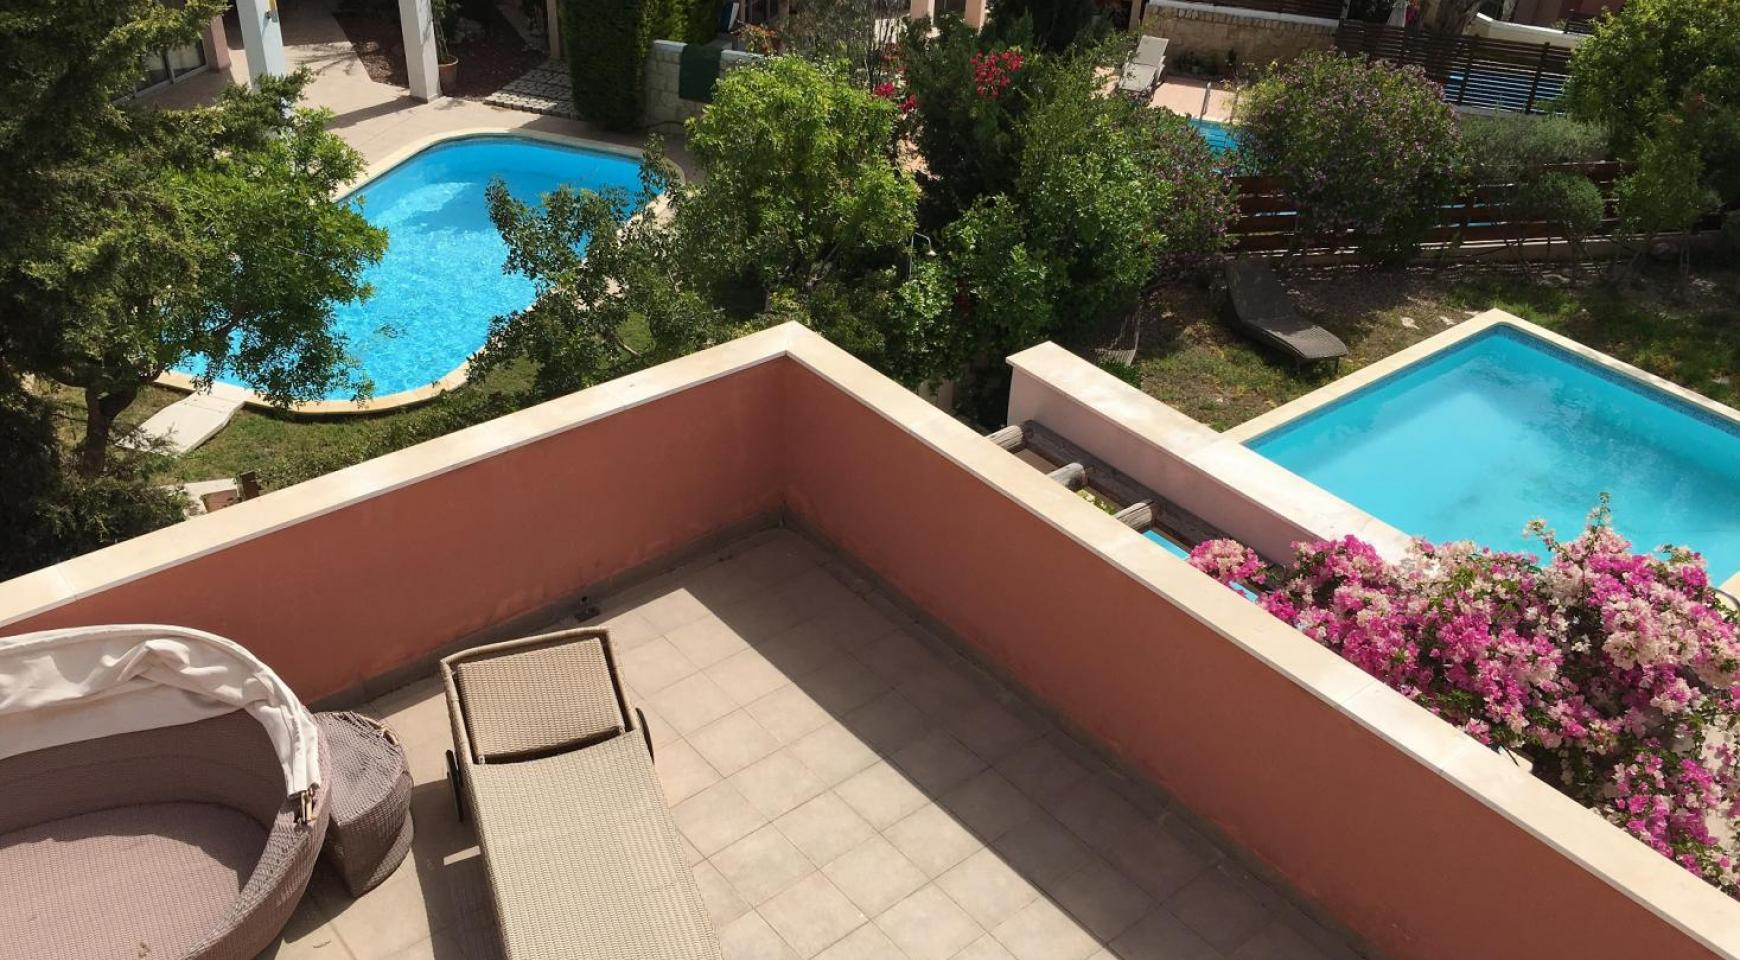 3 Bedroom Villa in Amathus Area - 1